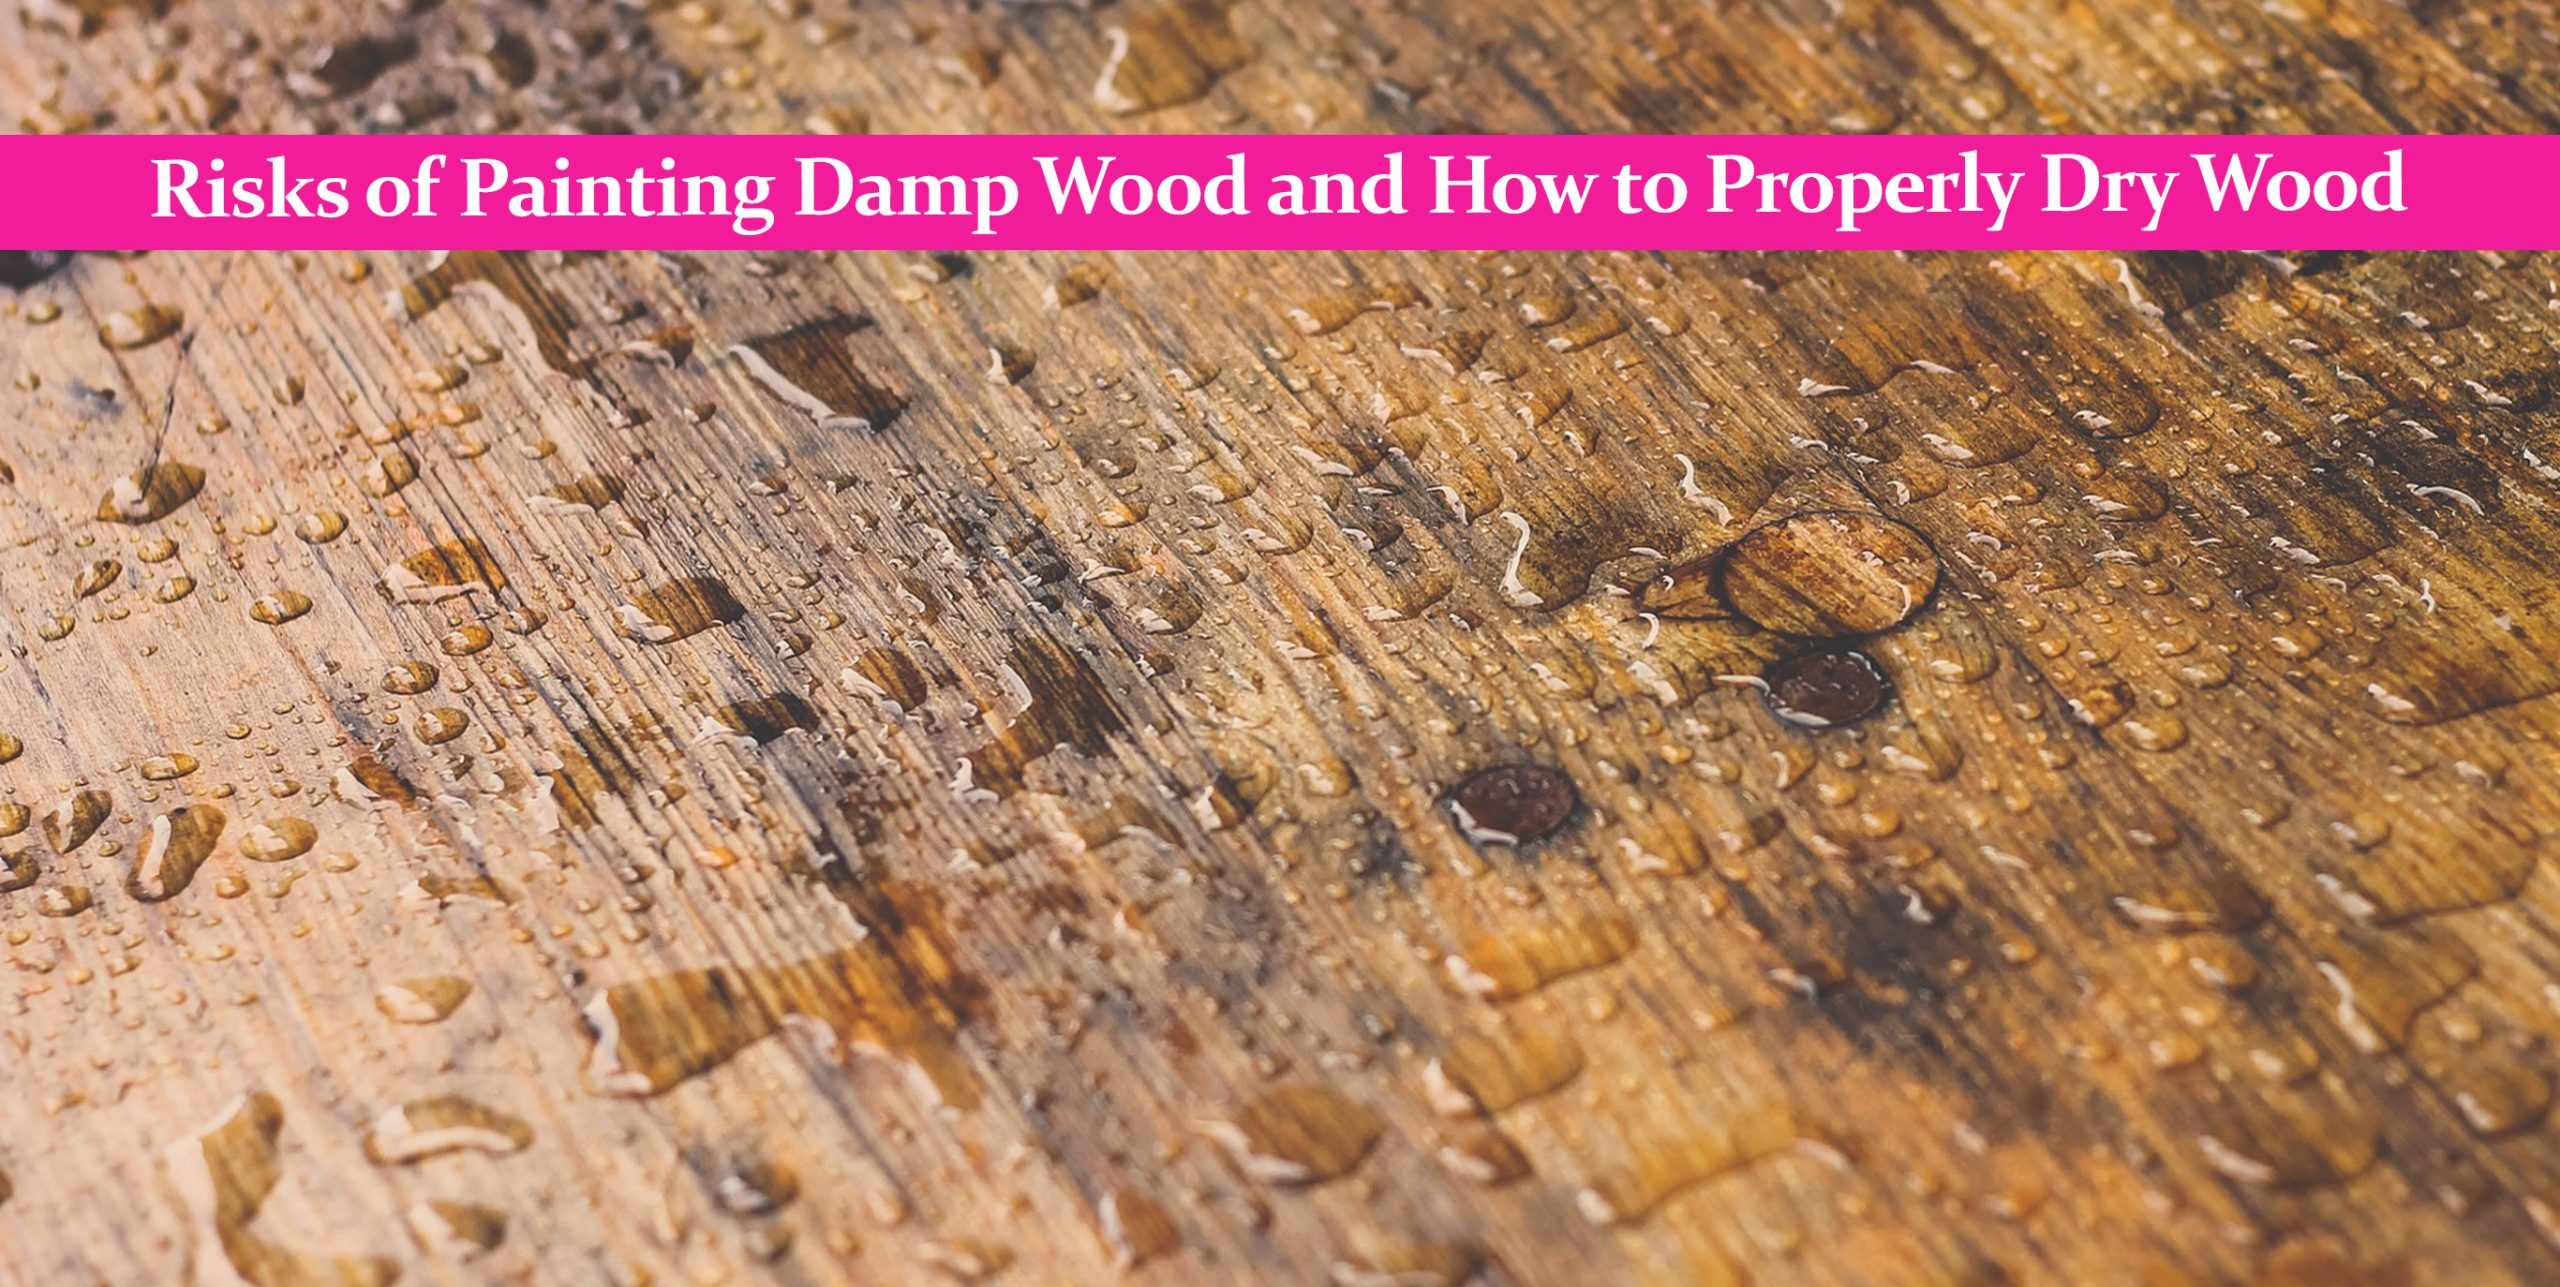 Risks of Painting Damp Wood and How to Properly Dry Wood